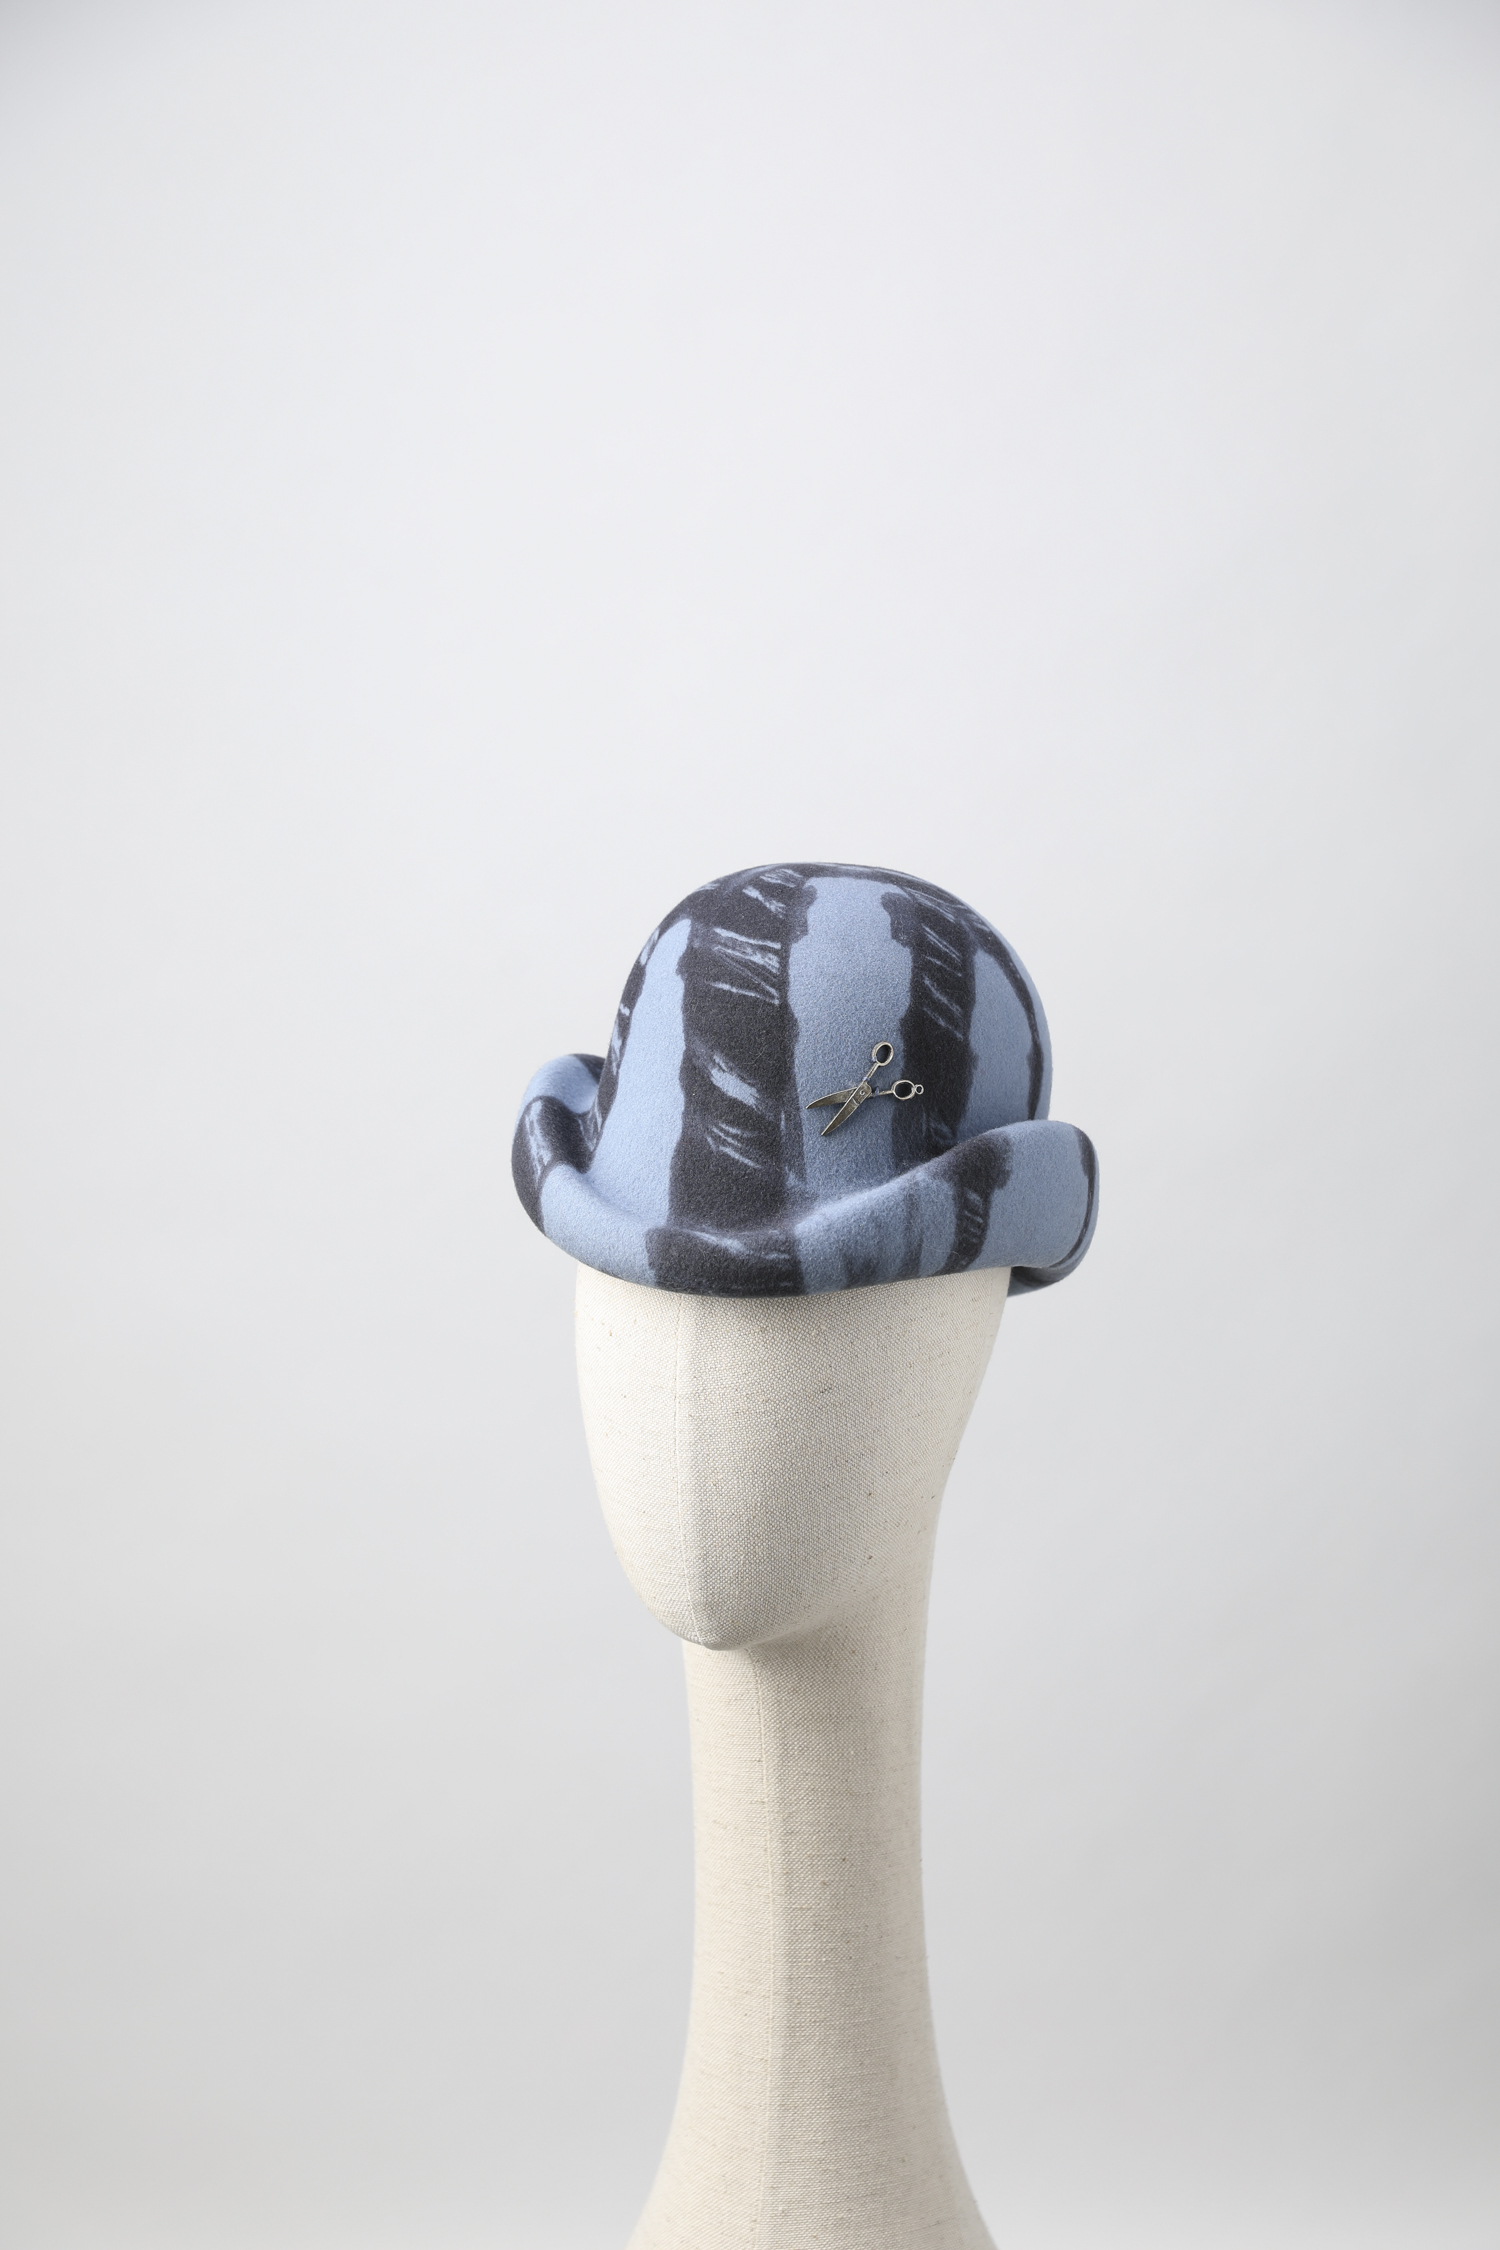 Copy of Jaycow Millinery by Jay Cheng Sample Stock 2019 (50).jpg